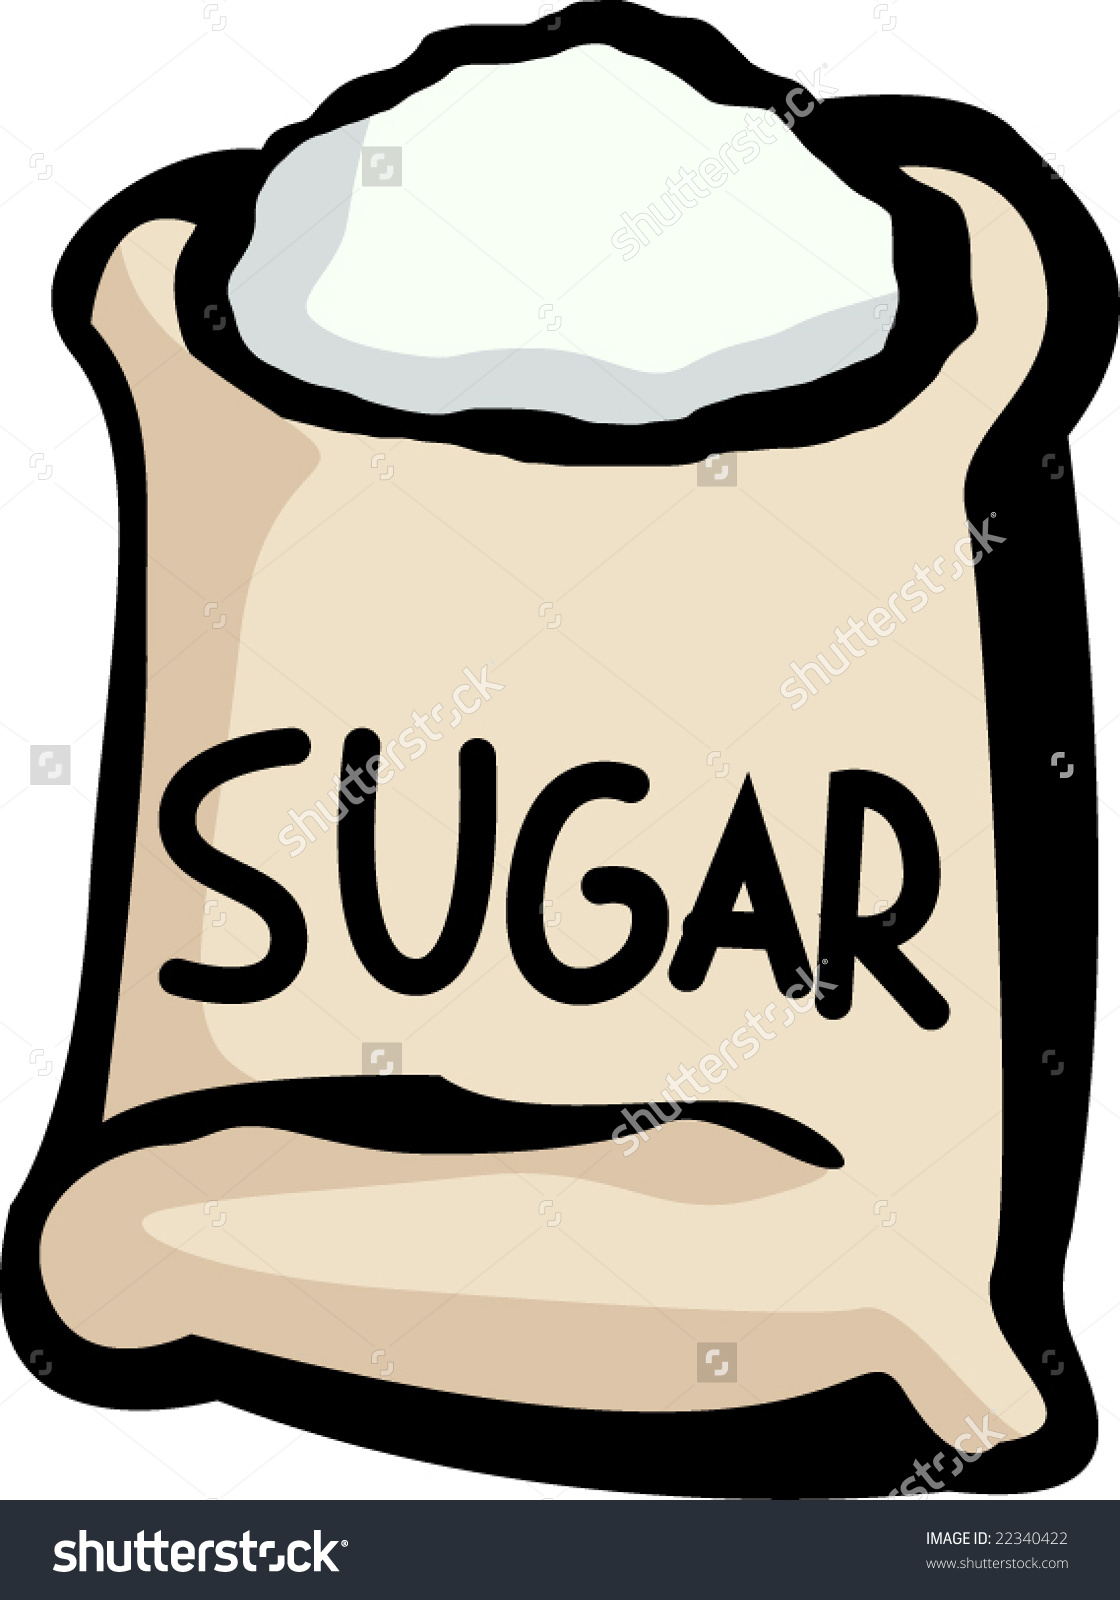 Clipart bag of sugar.